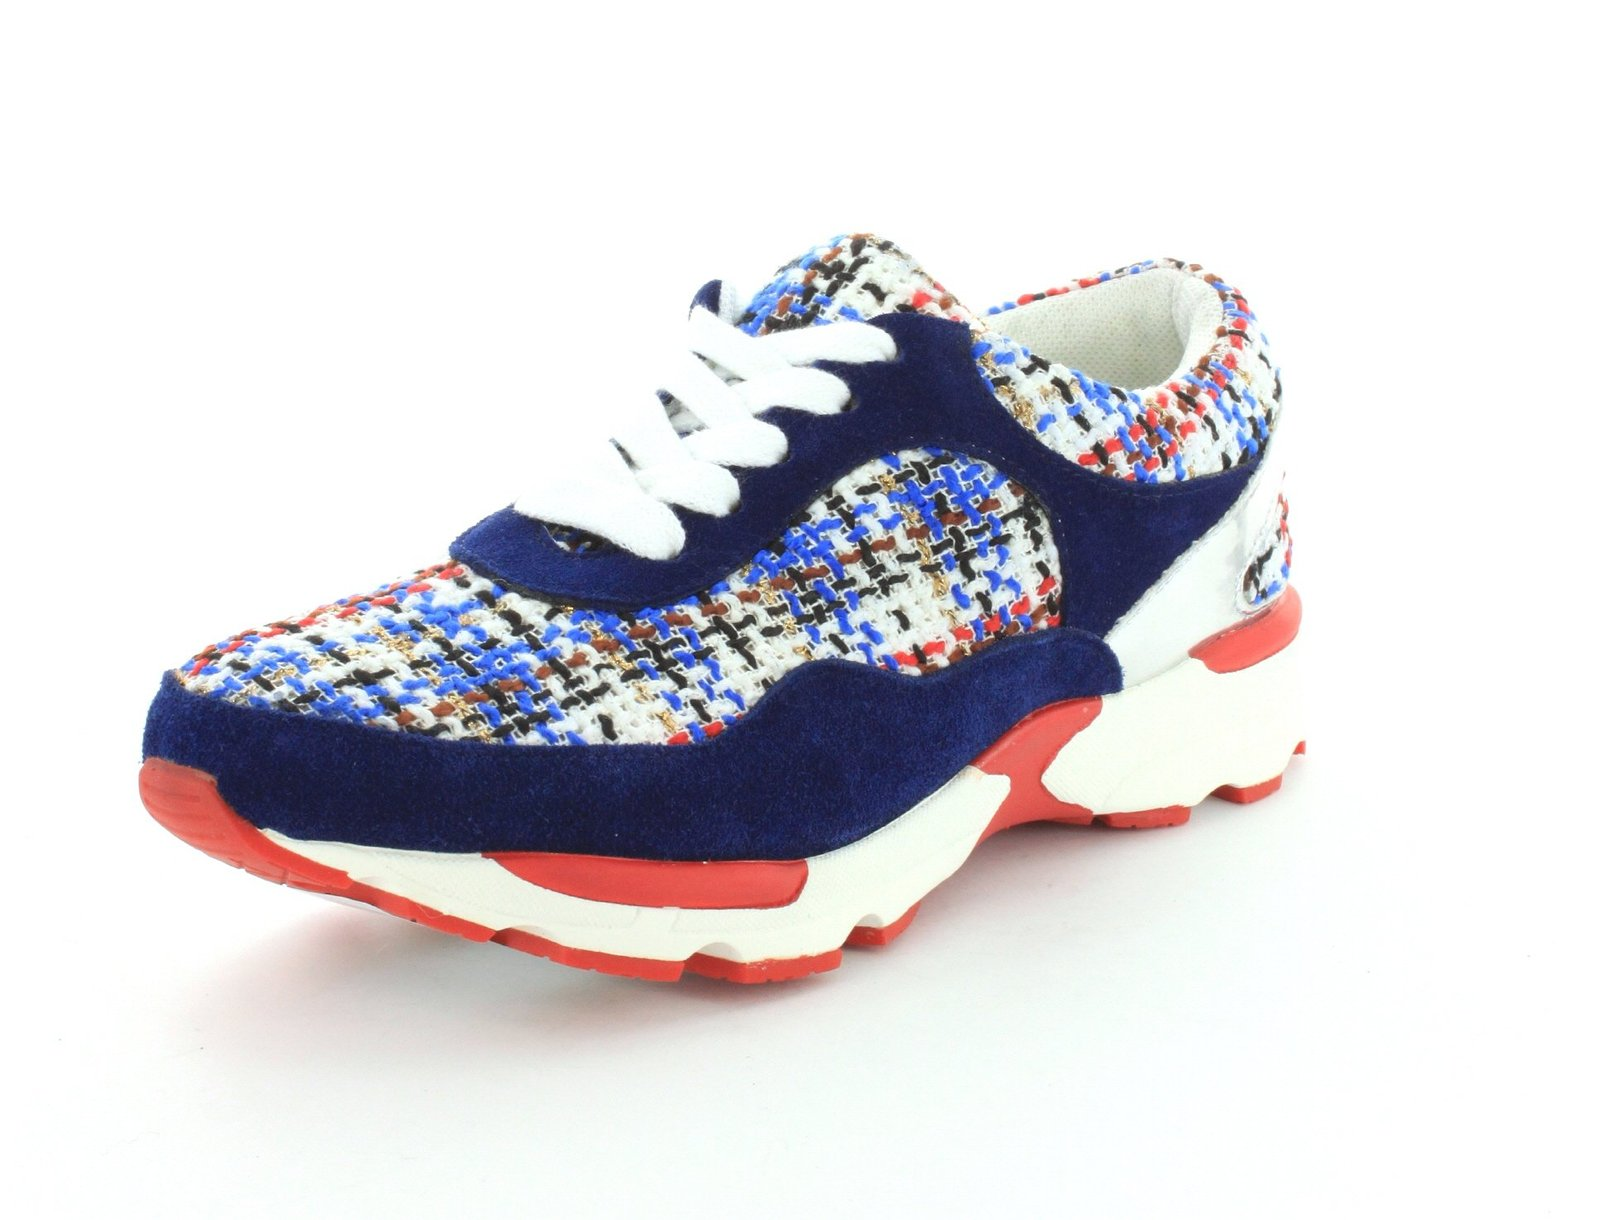 Jeffrey Campbell Womens Run Walk Navy Sneaker - 6 M